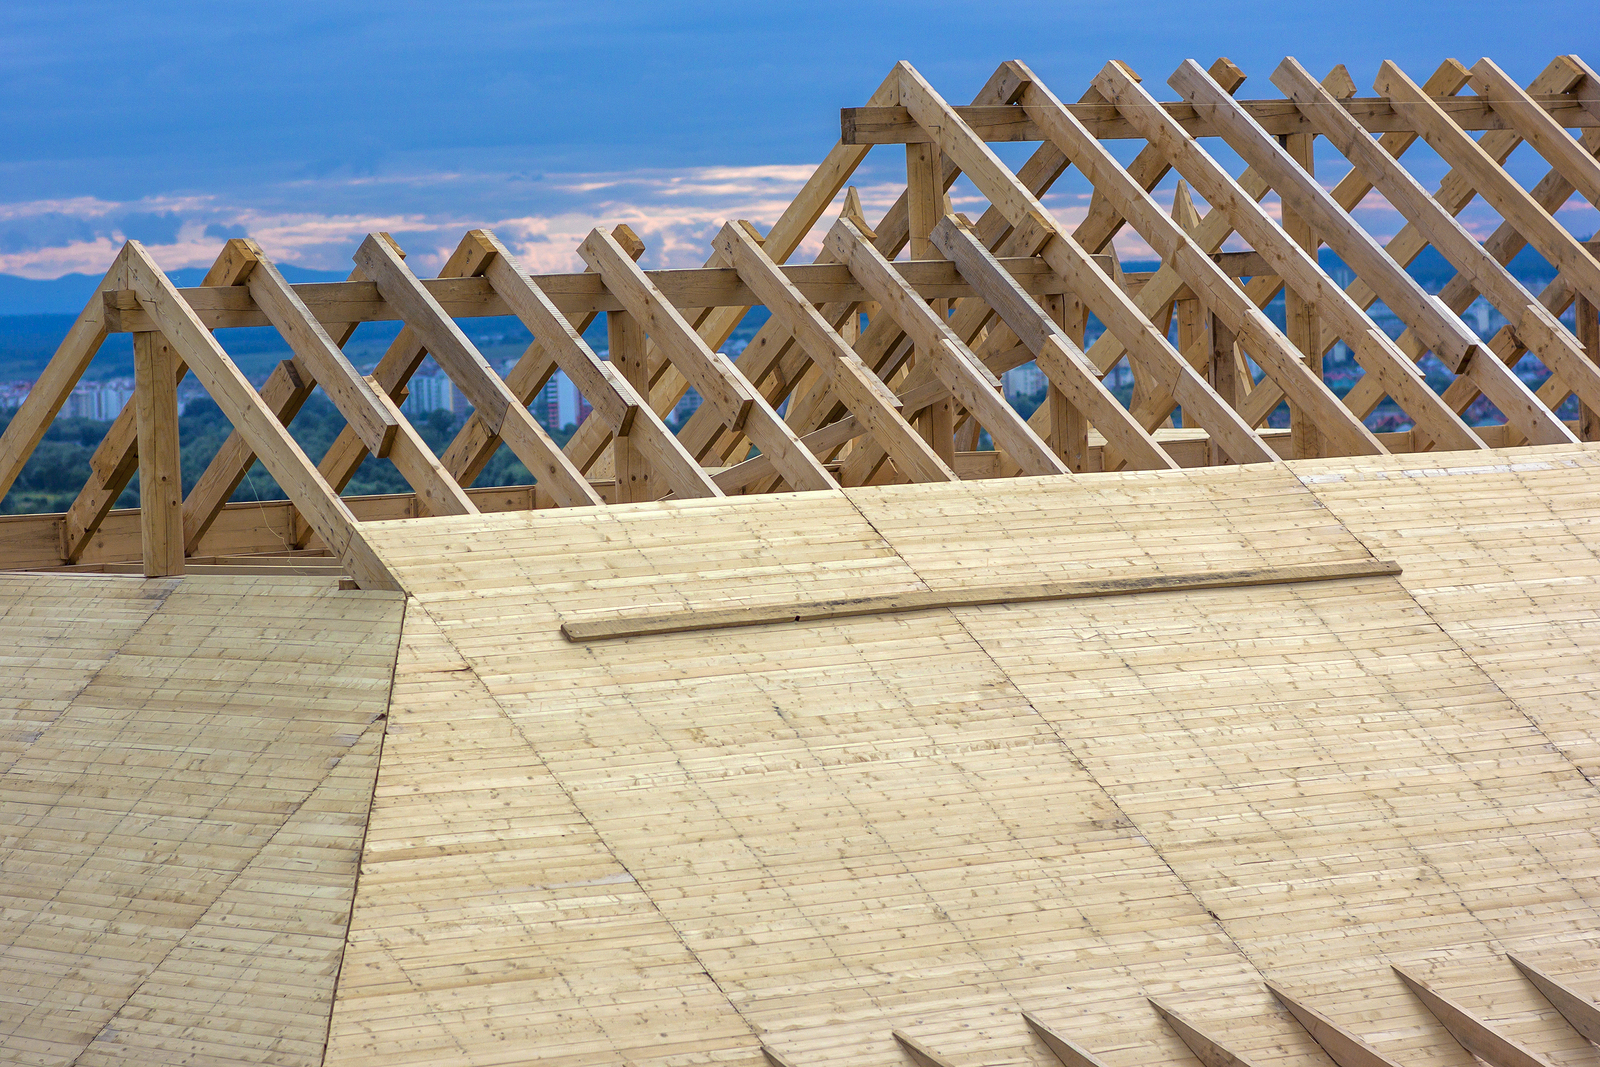 Roofing Construction. Wooden Roof Frame House Construction